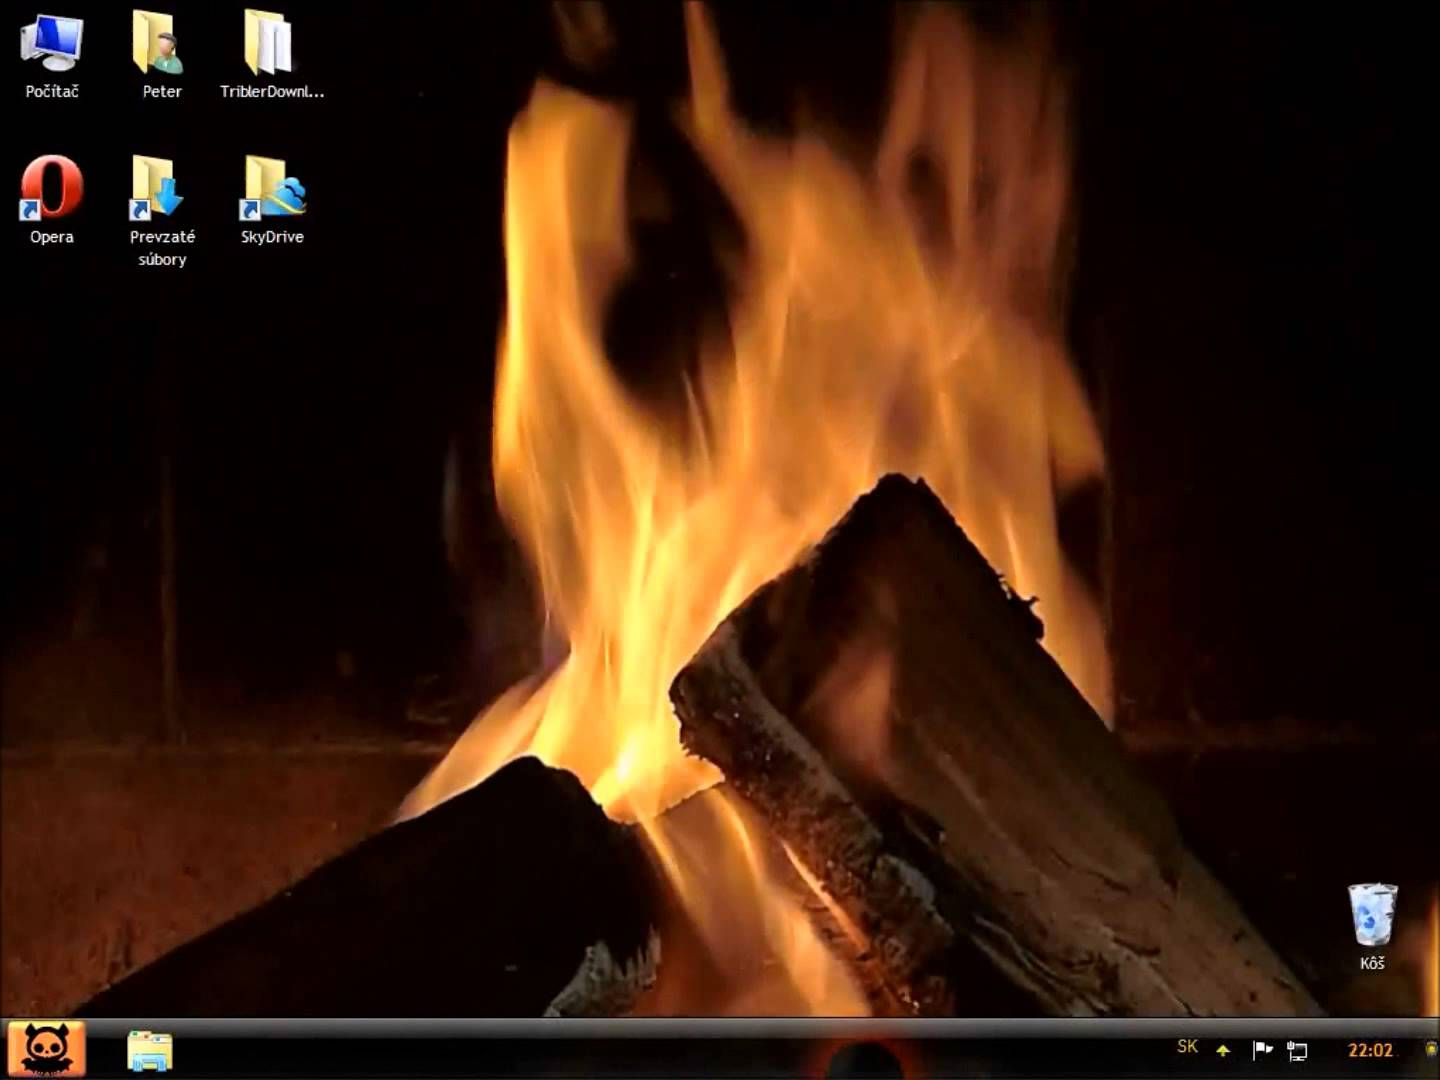 Live Fire Wallpaper For Pc